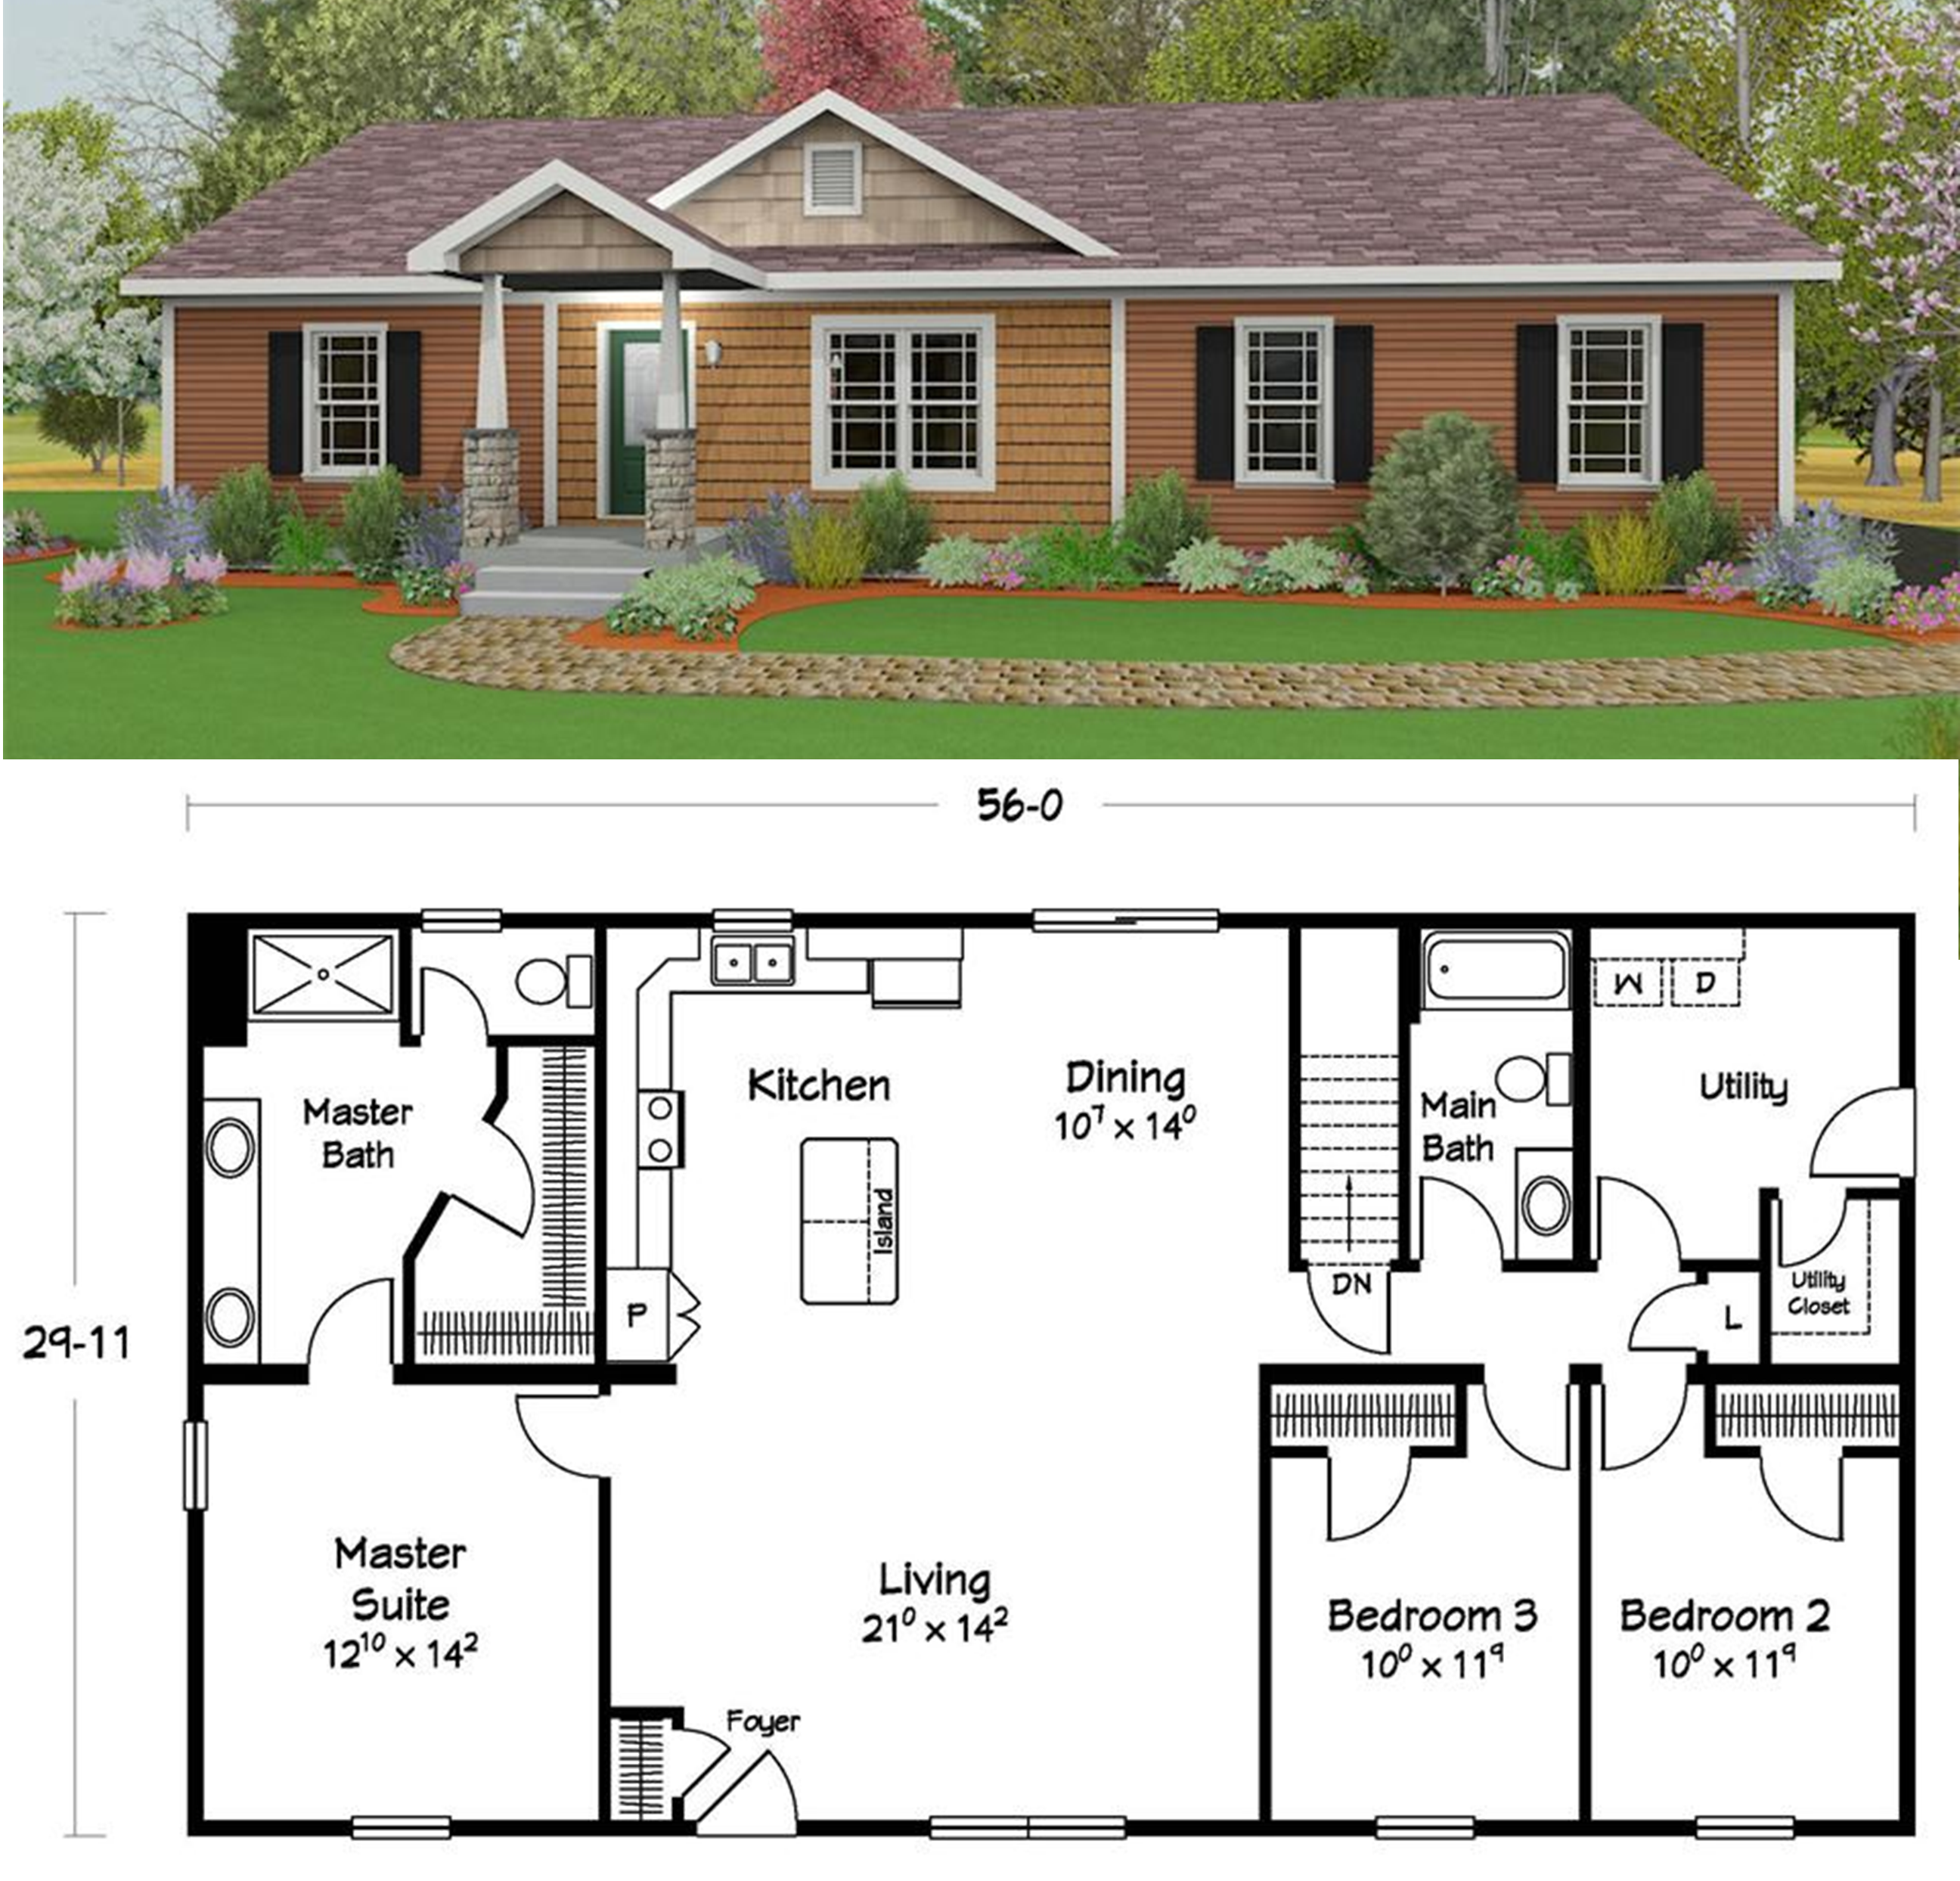 Custom Home Designs: One Of Our Most Popular Plans.